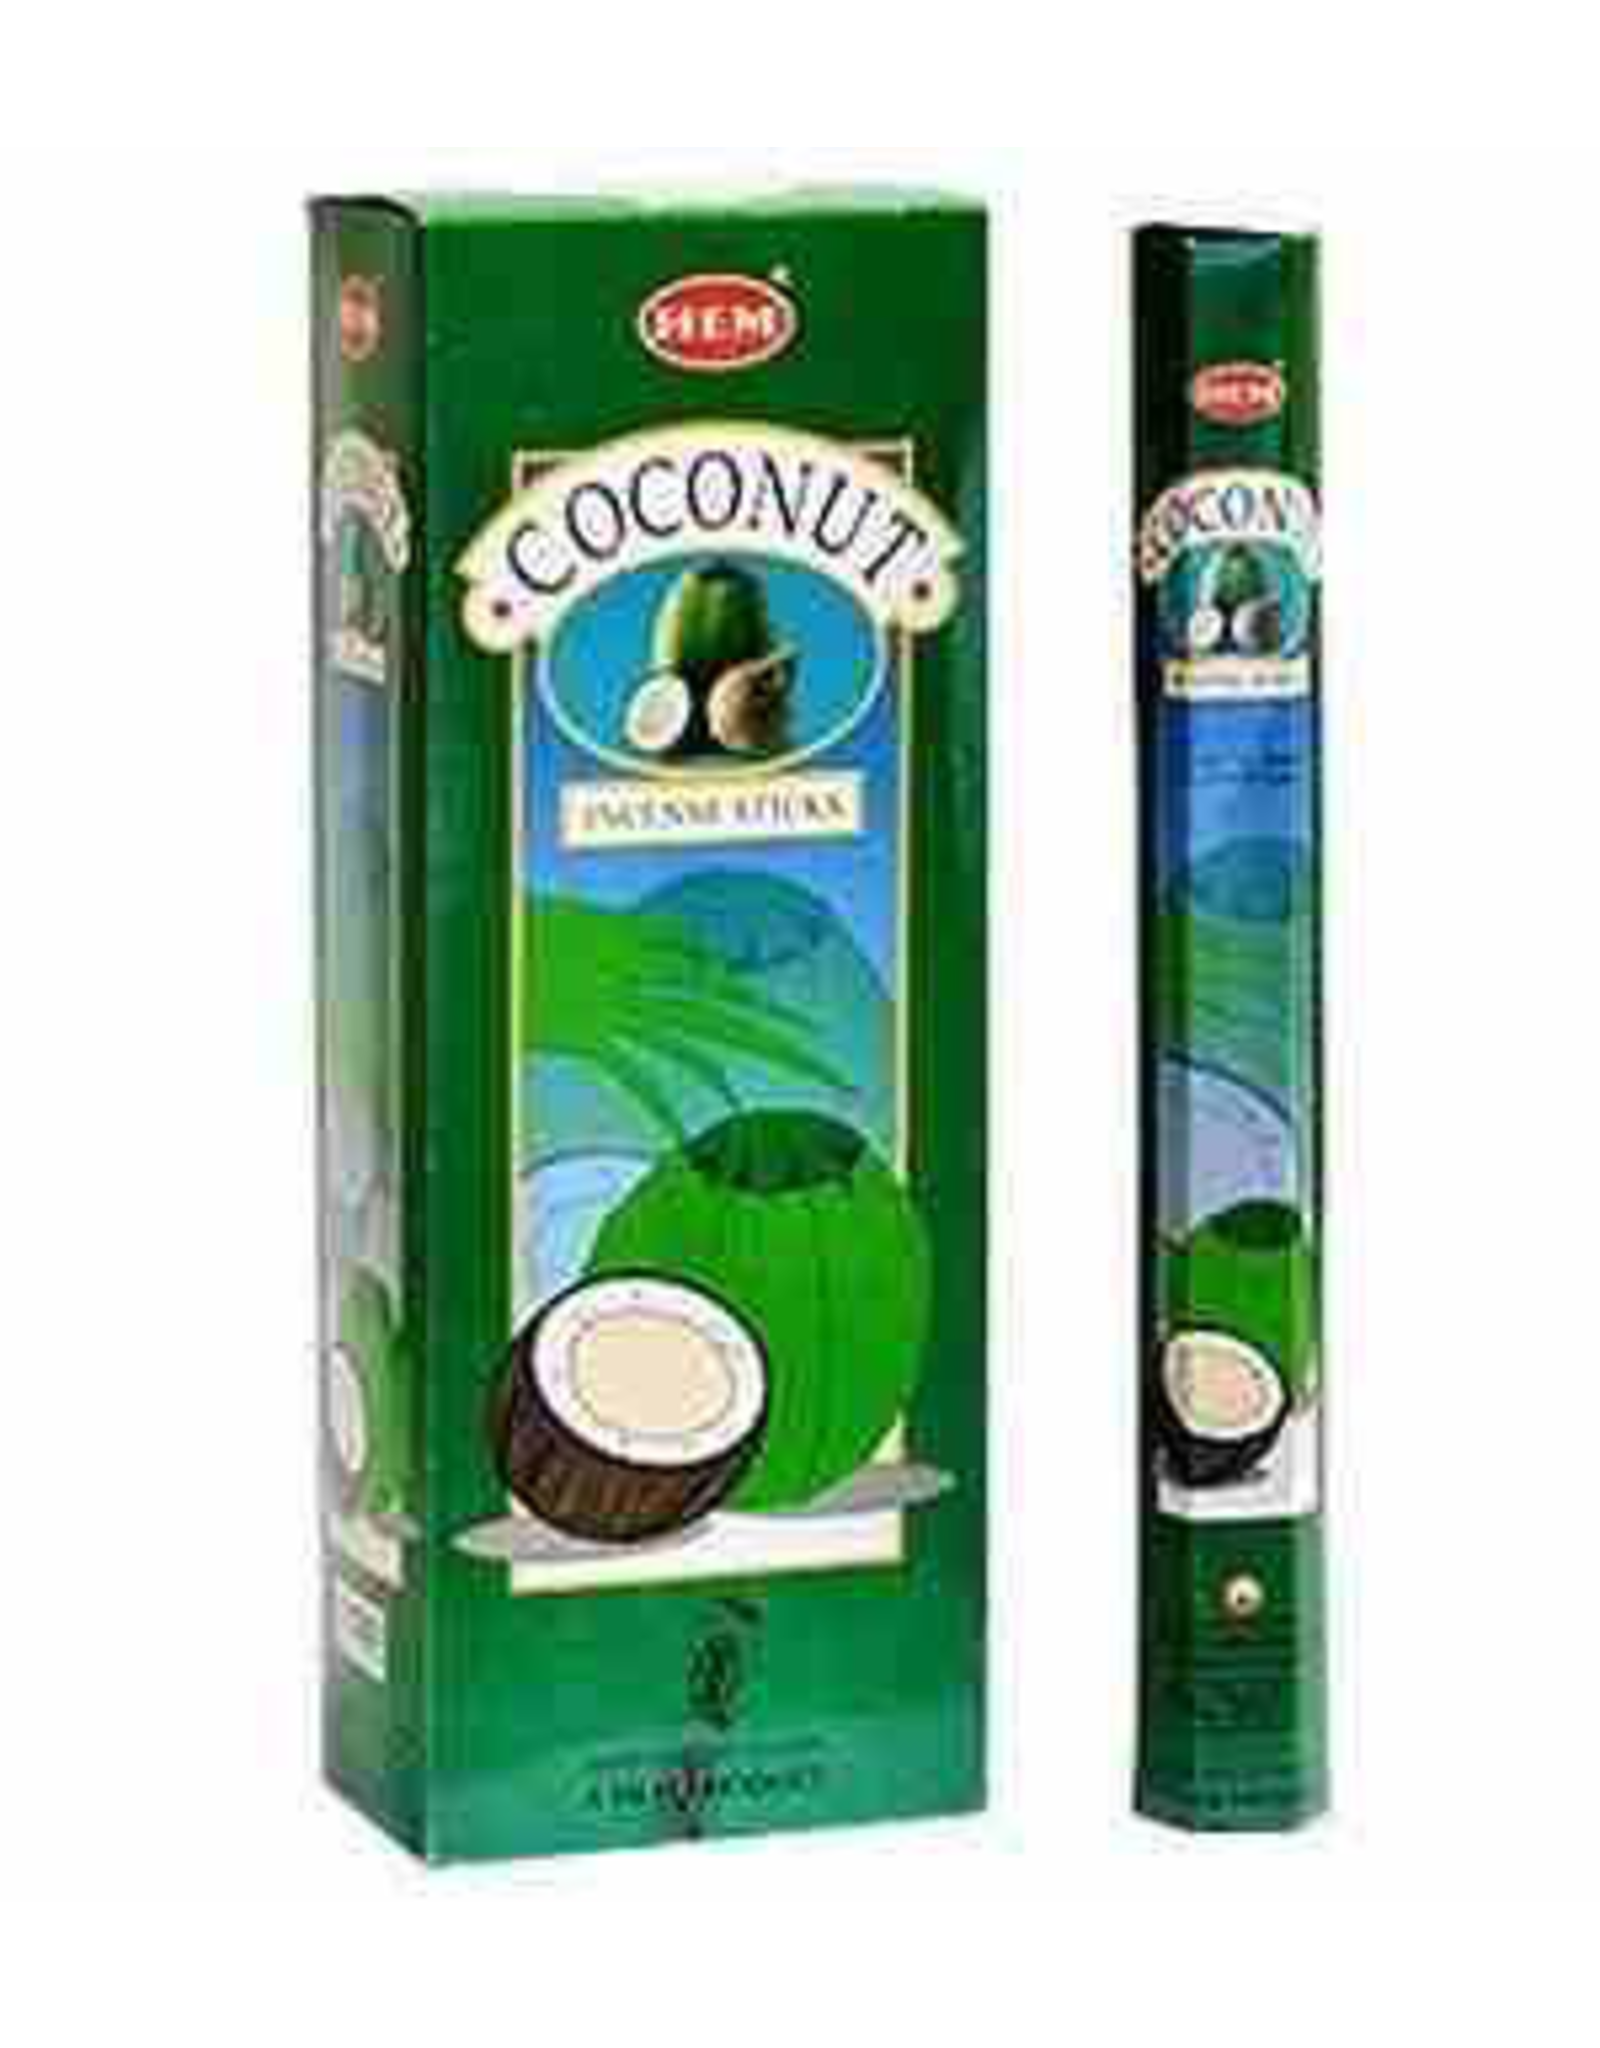 HEM 20 Gram Coconut Hex Box Incense